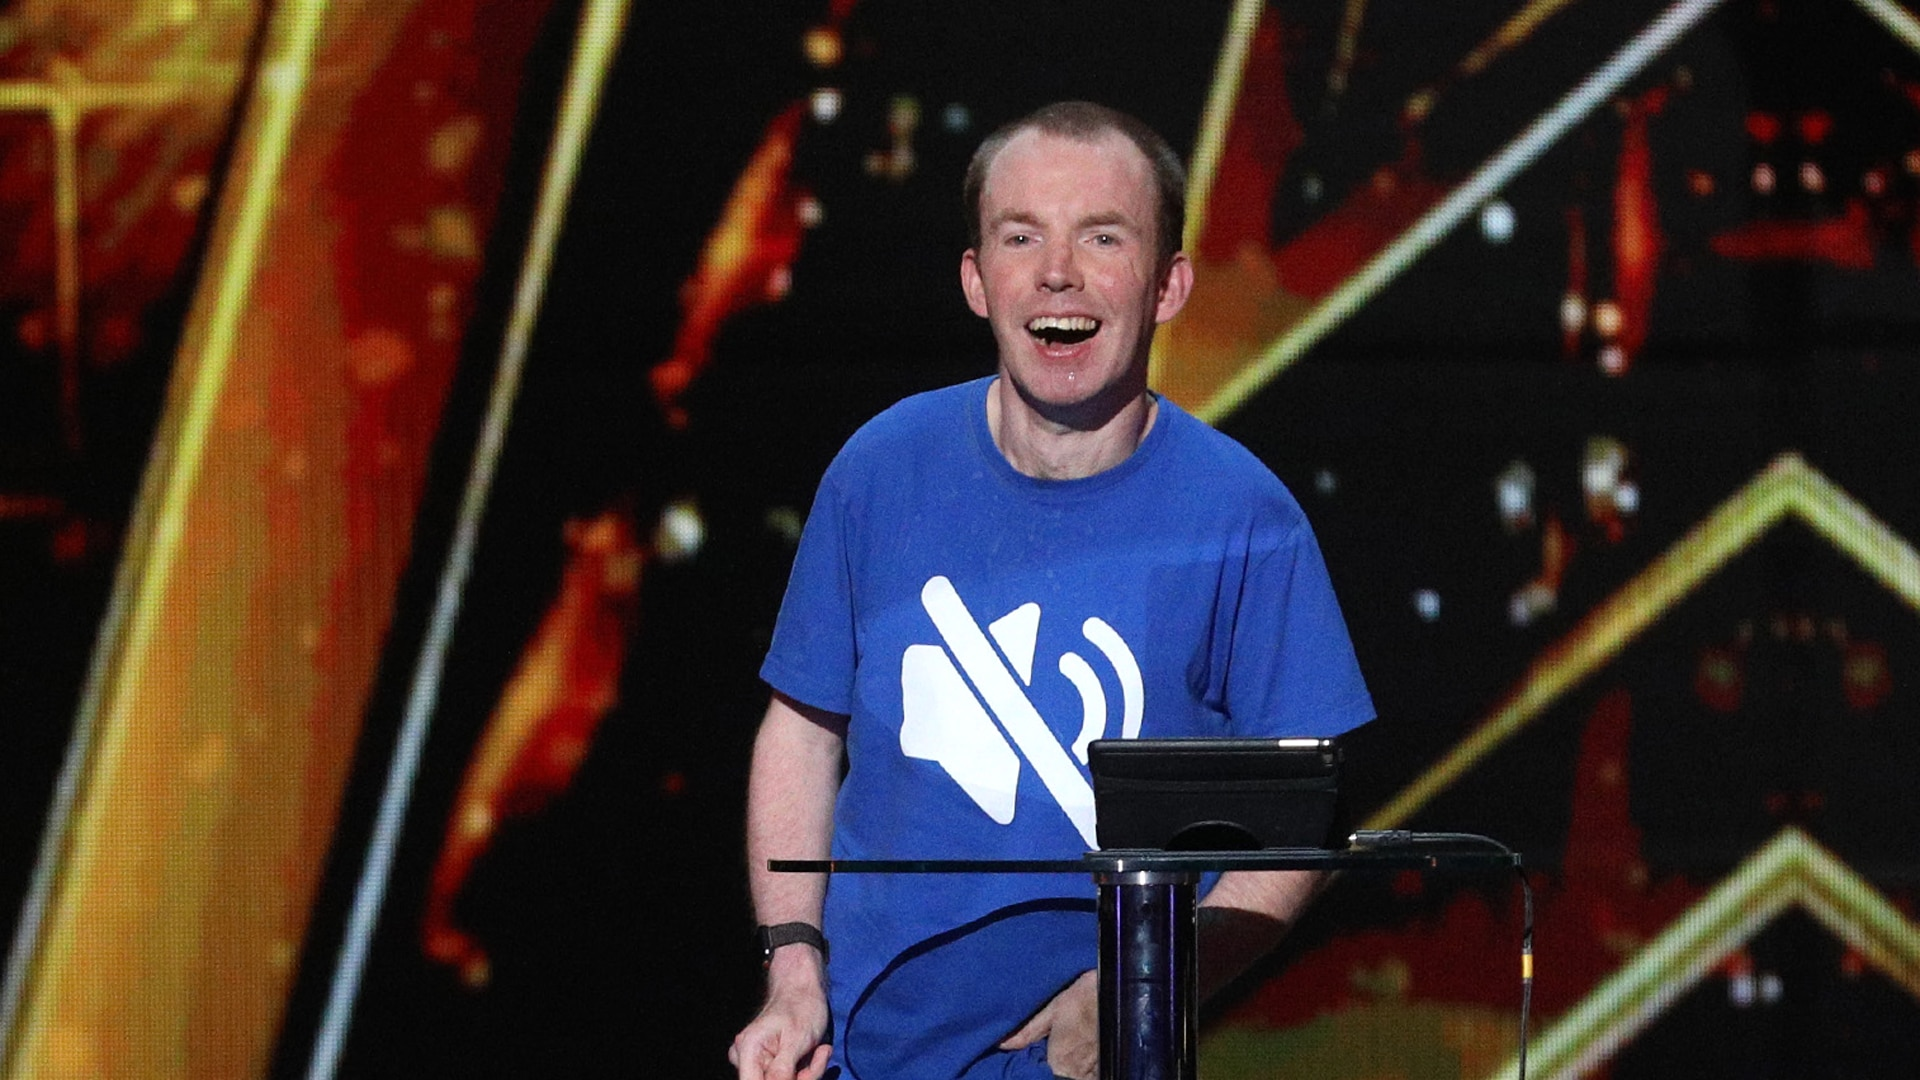 Watch America's Got Talent Highlight: Lost Voice Guy - The ...